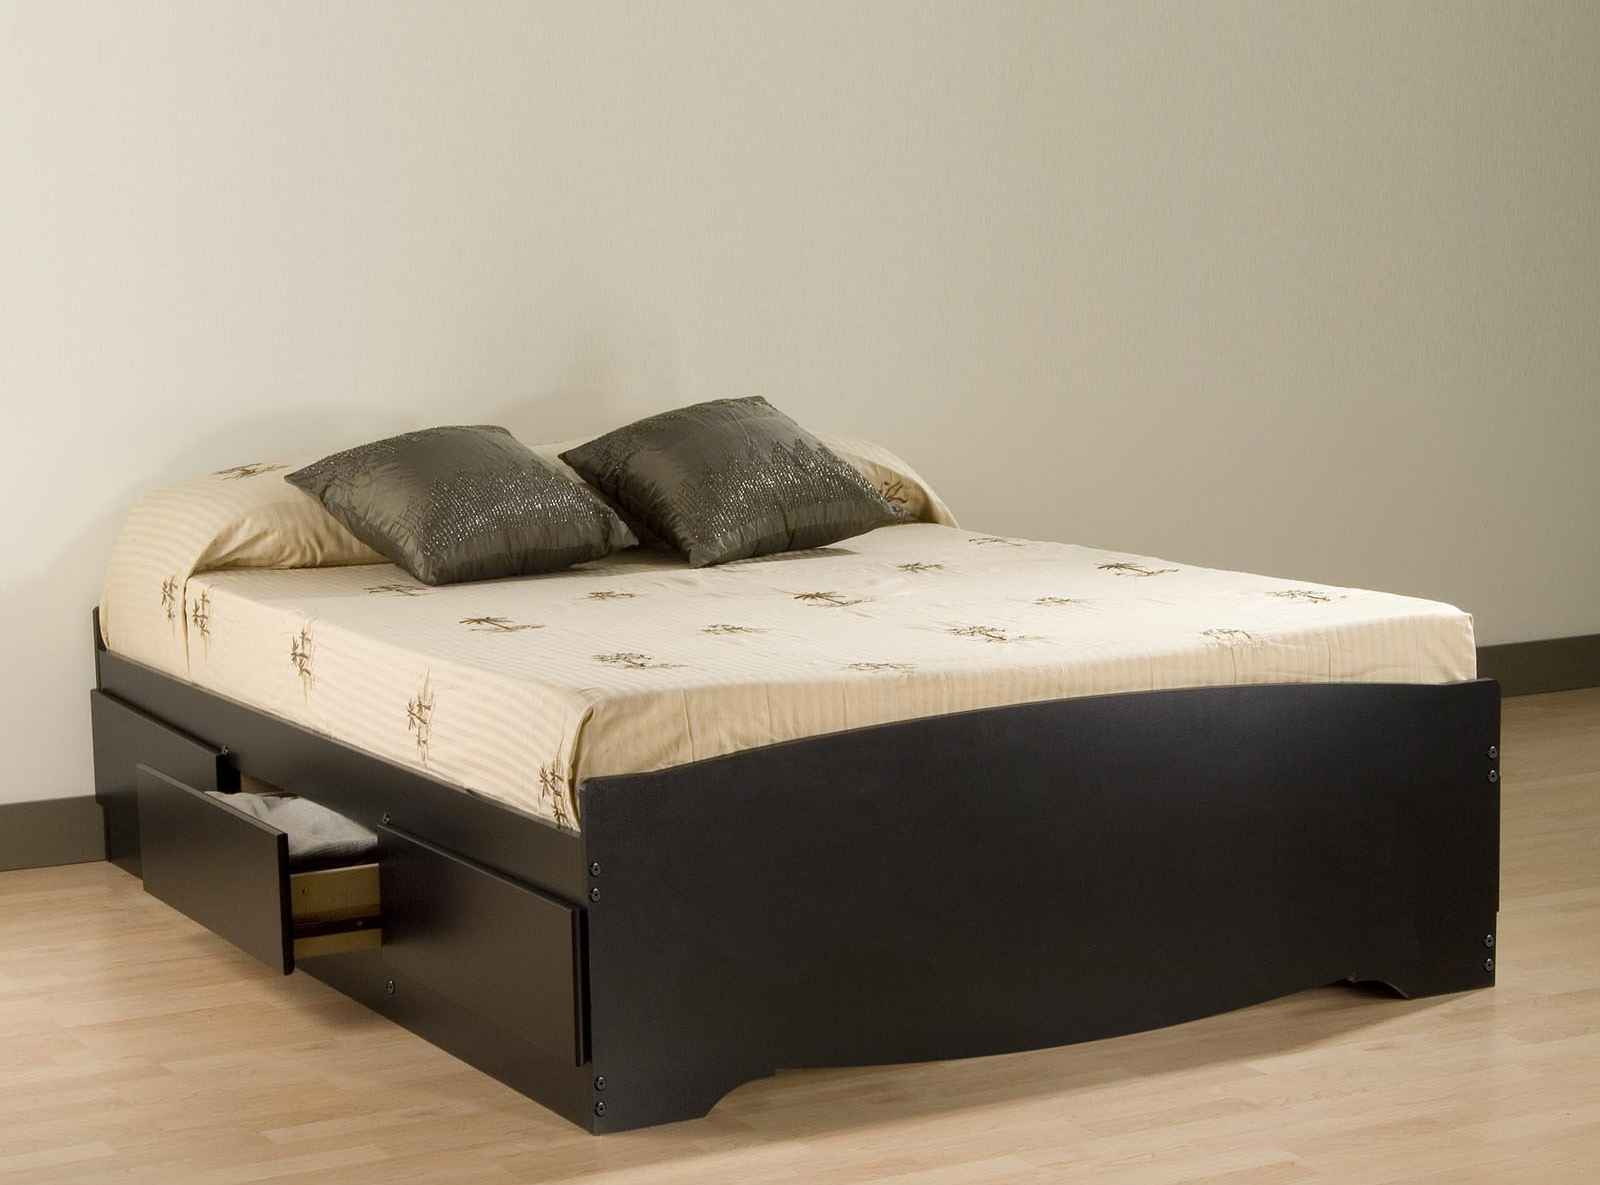 Woodworking queen size bed plans with storage PDF Free Download